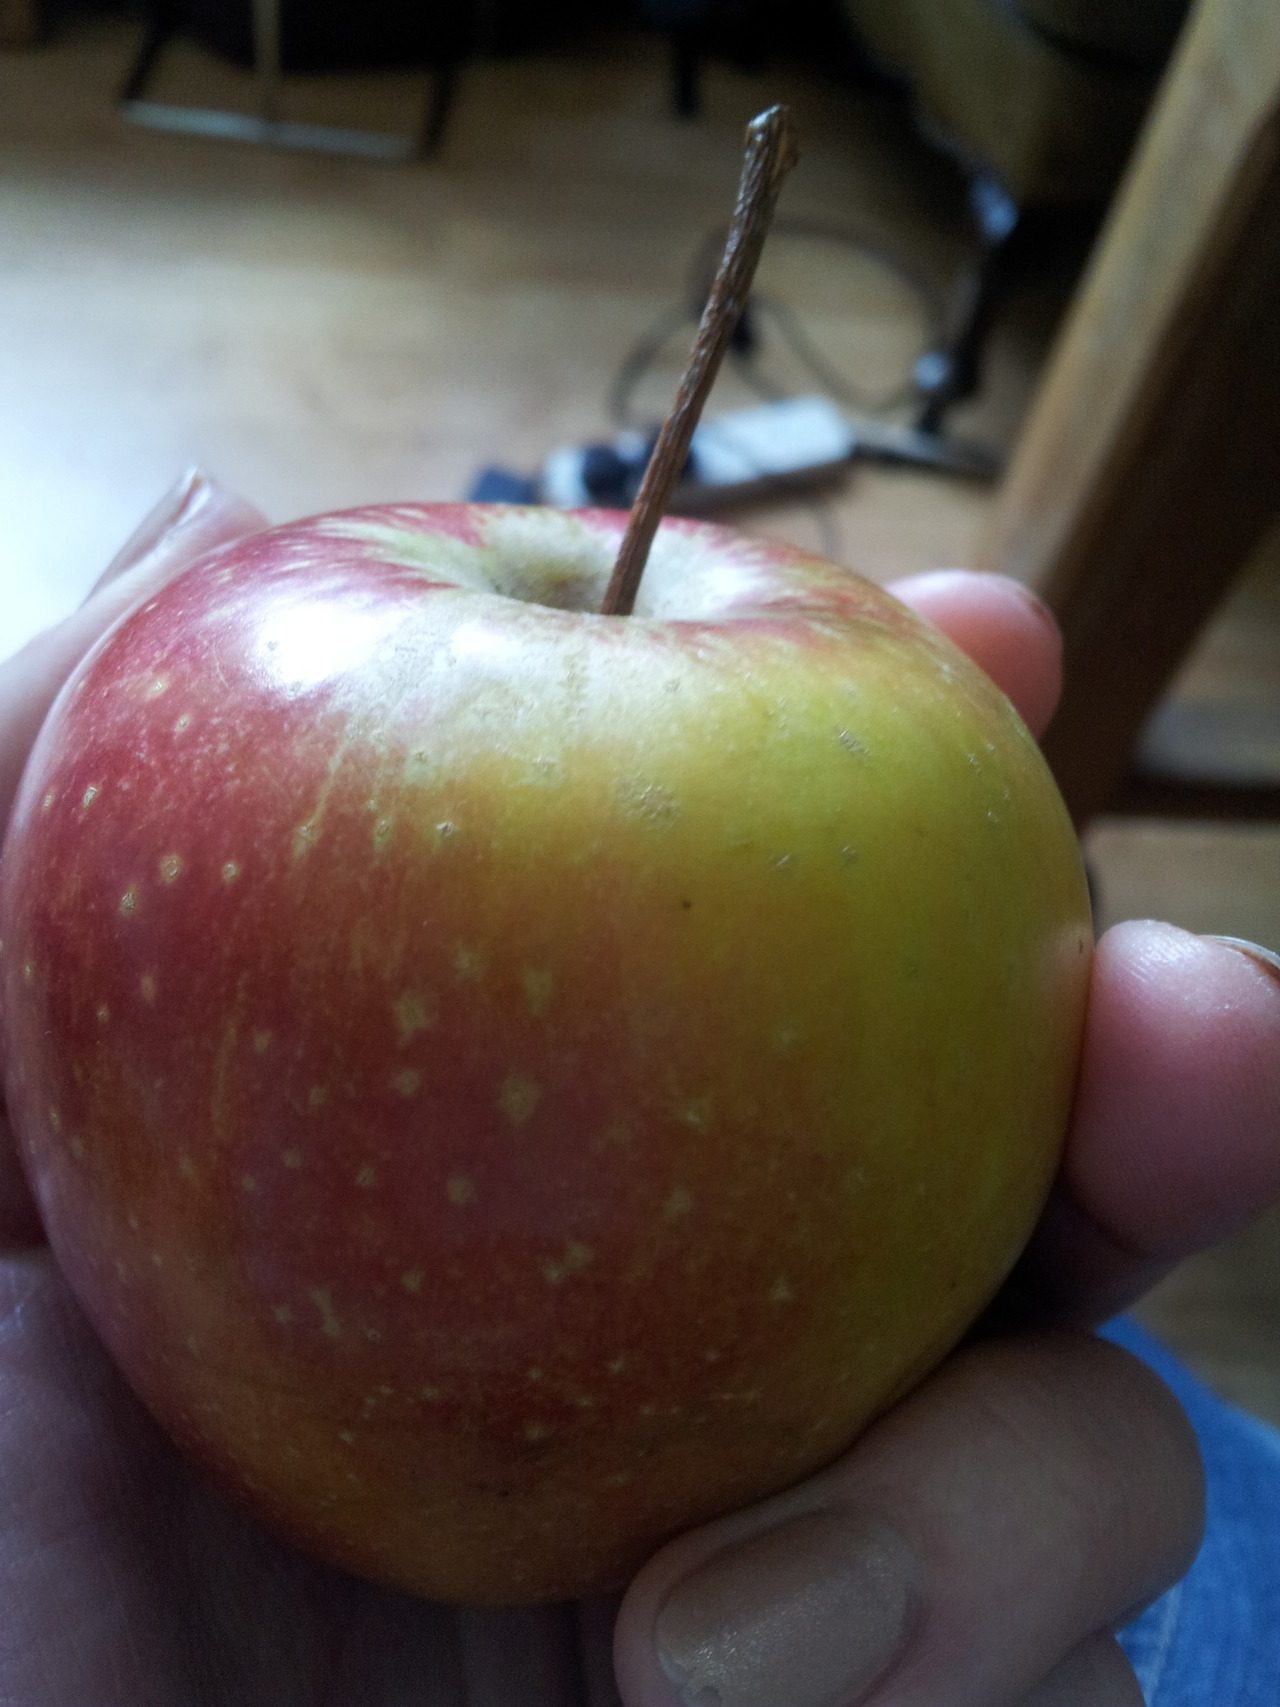 Today's apple is a Katy